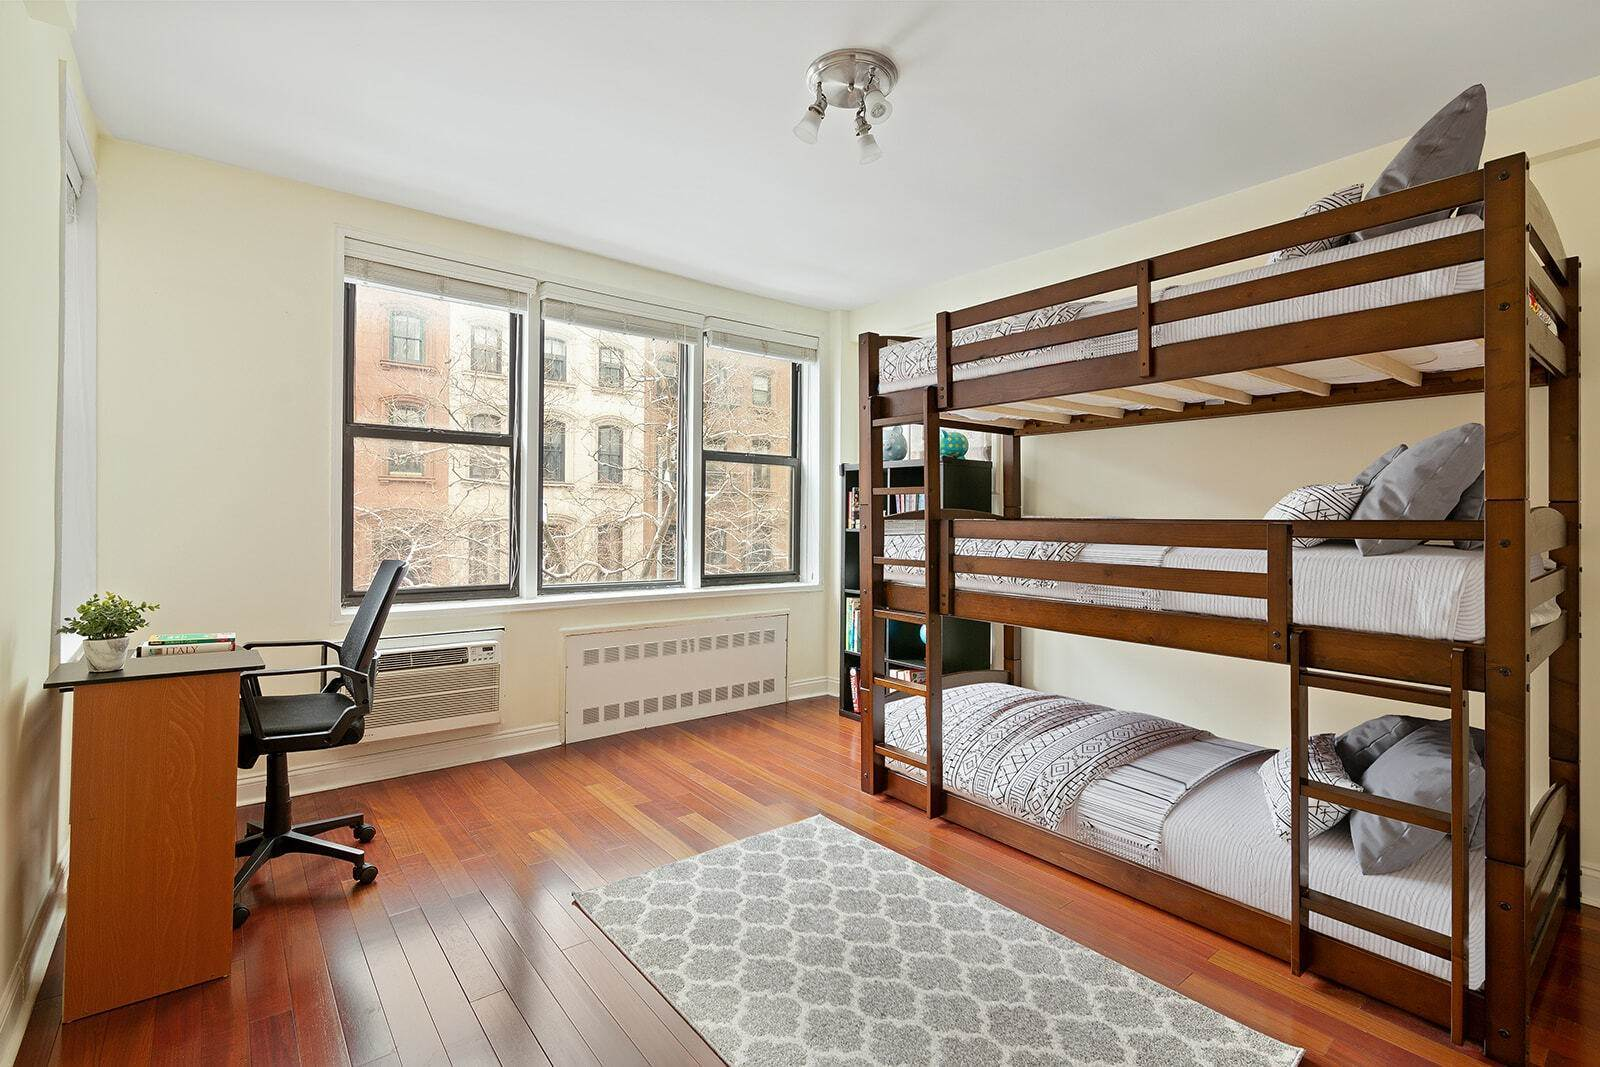 9. Co-op property for Sale at 211 East 18th Street, 2RST New York, New York,10003 United States